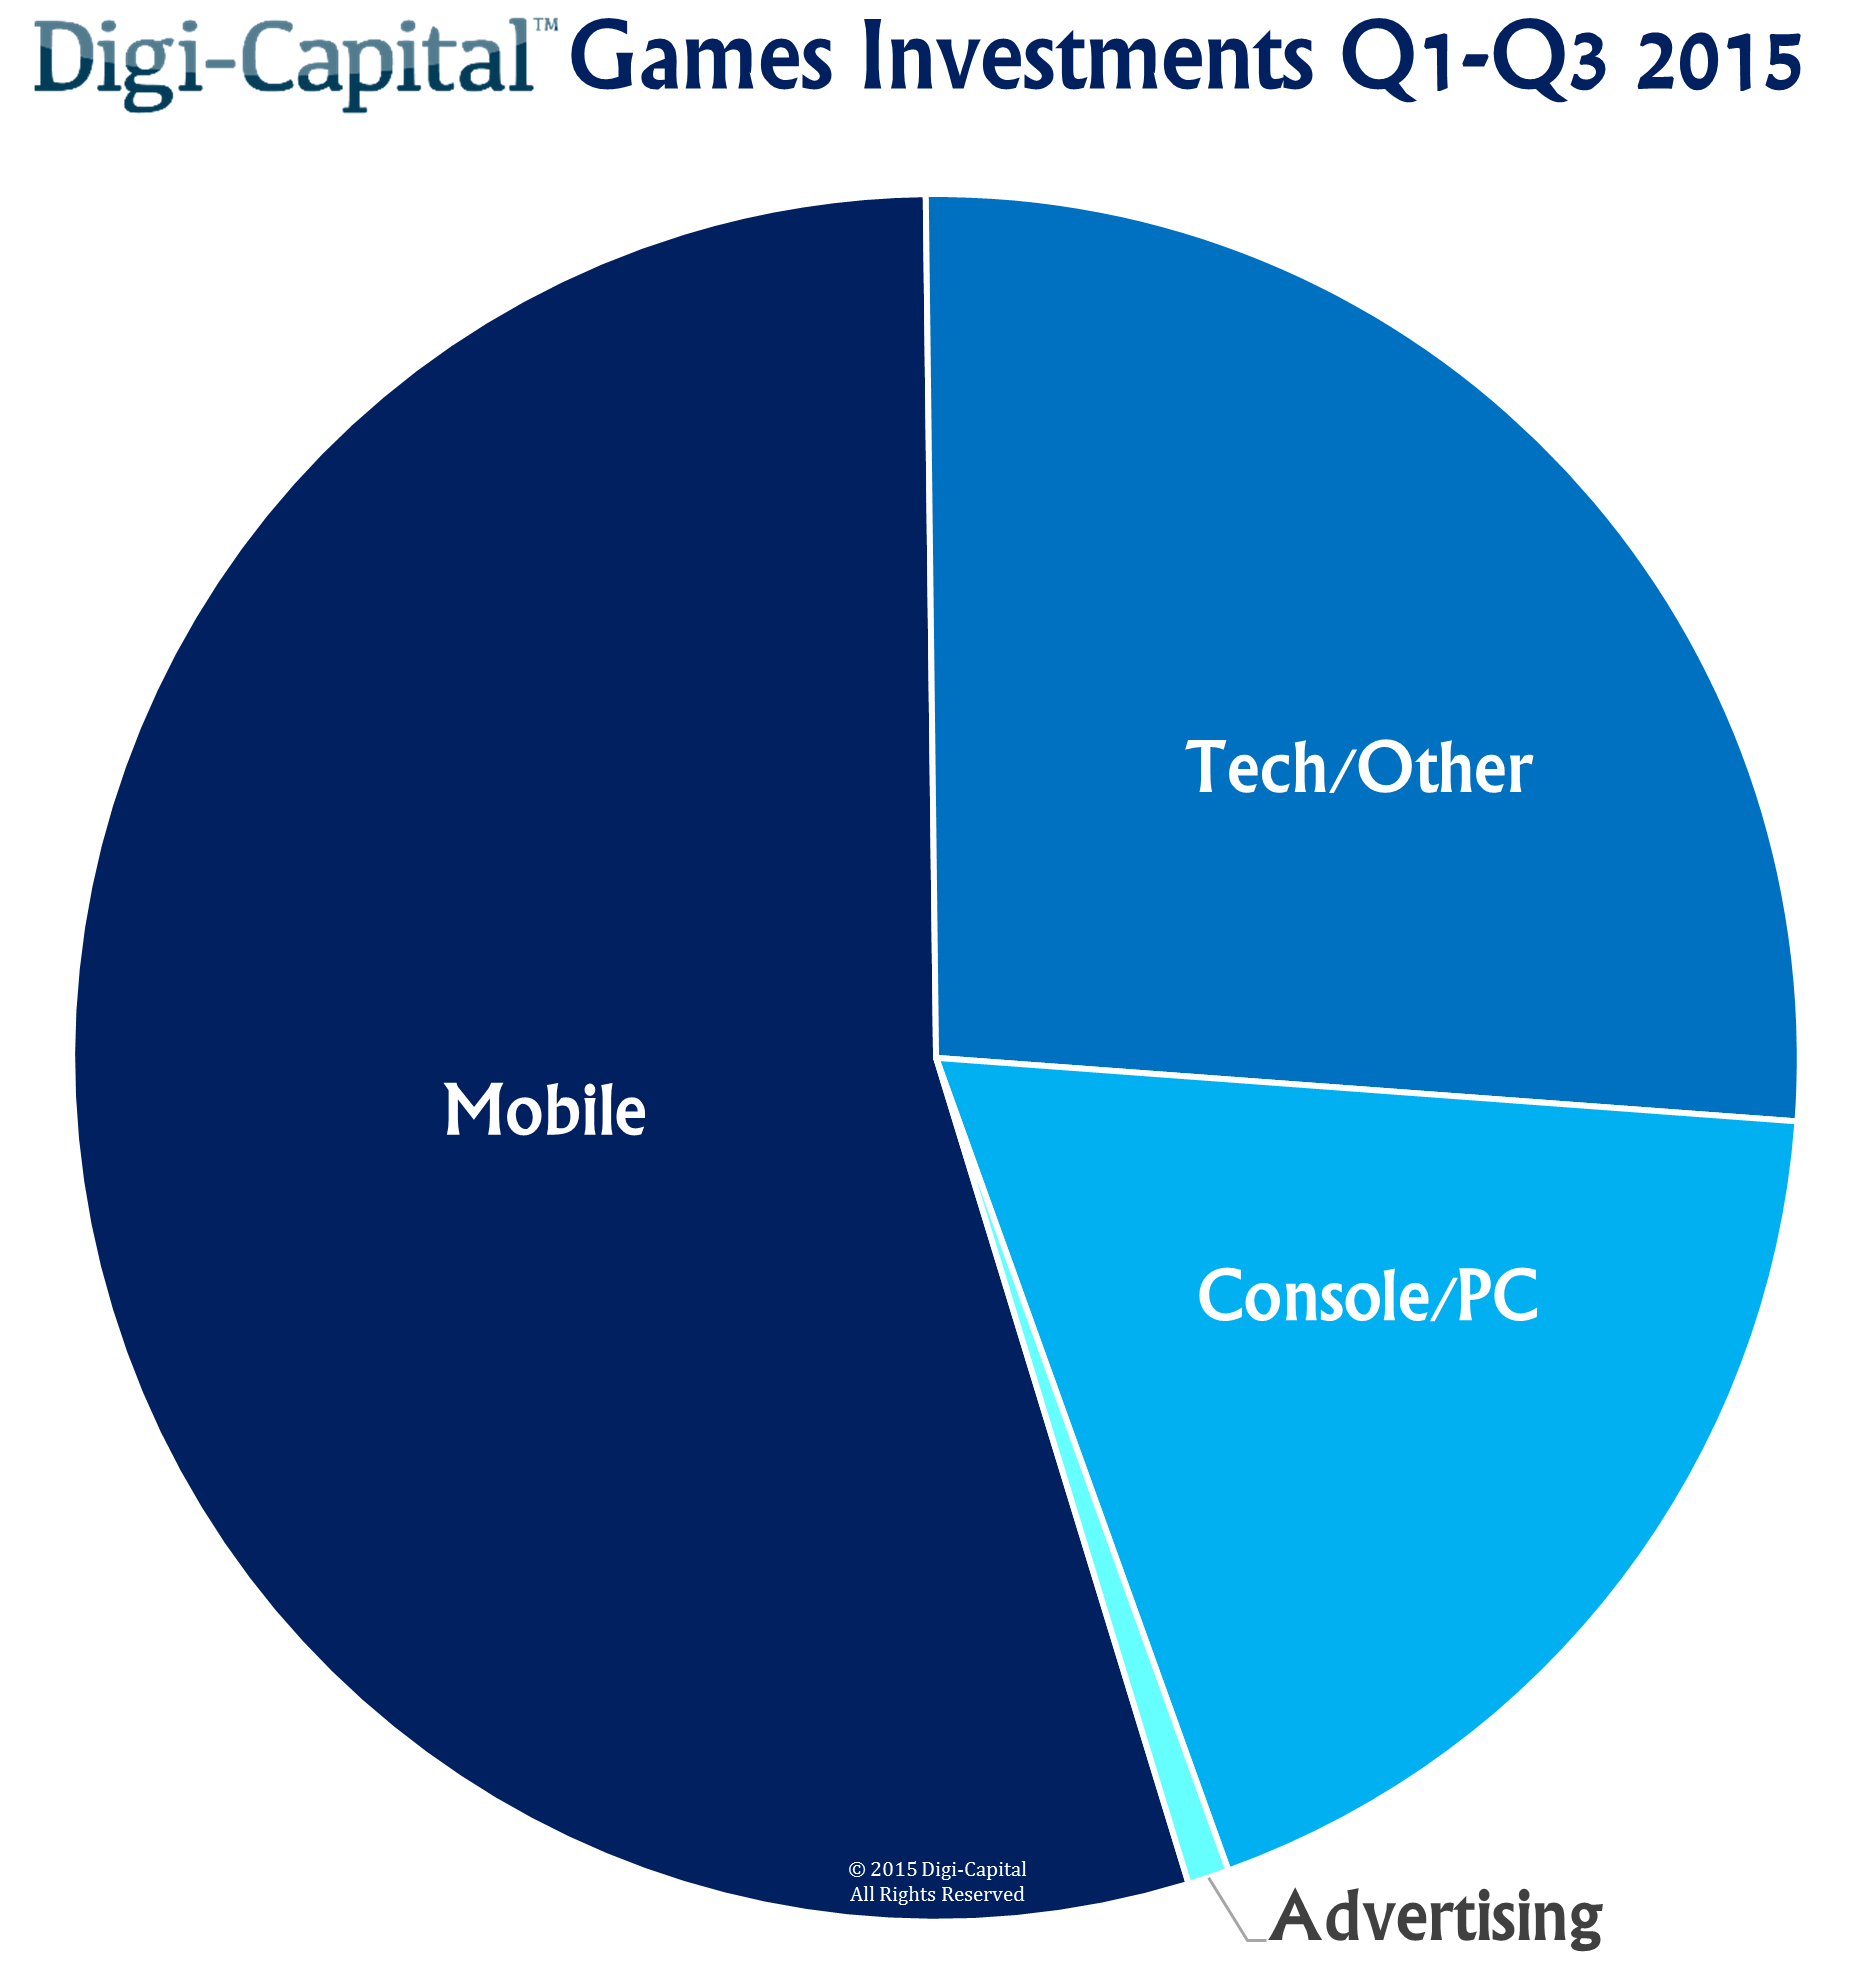 Digi-Capital Games Investments to Q3 2015